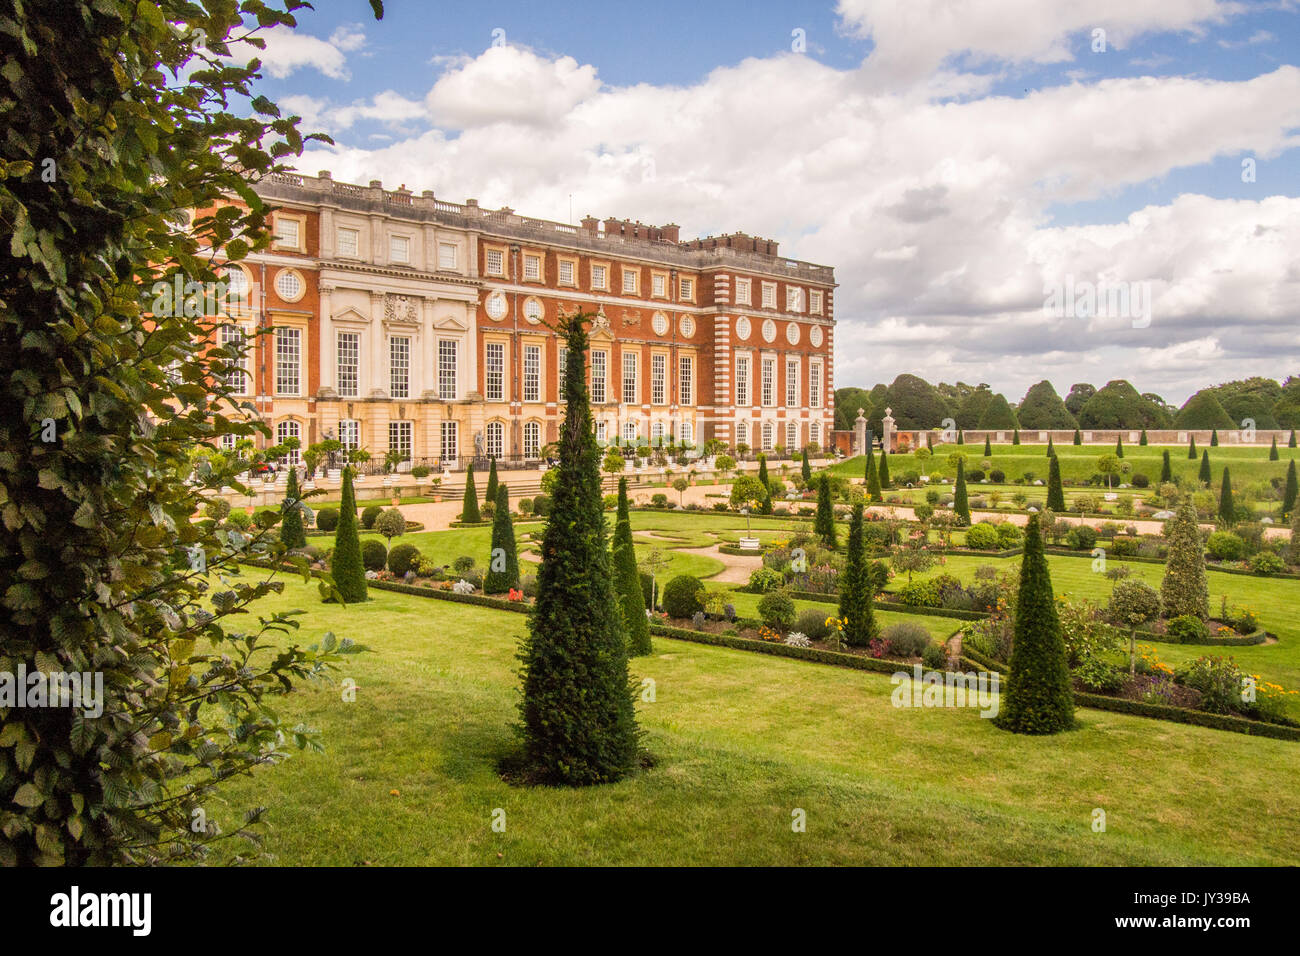 Hampton Court Palace with the Privy Garden in front, Richmond on Thames, London, England. - Stock Image